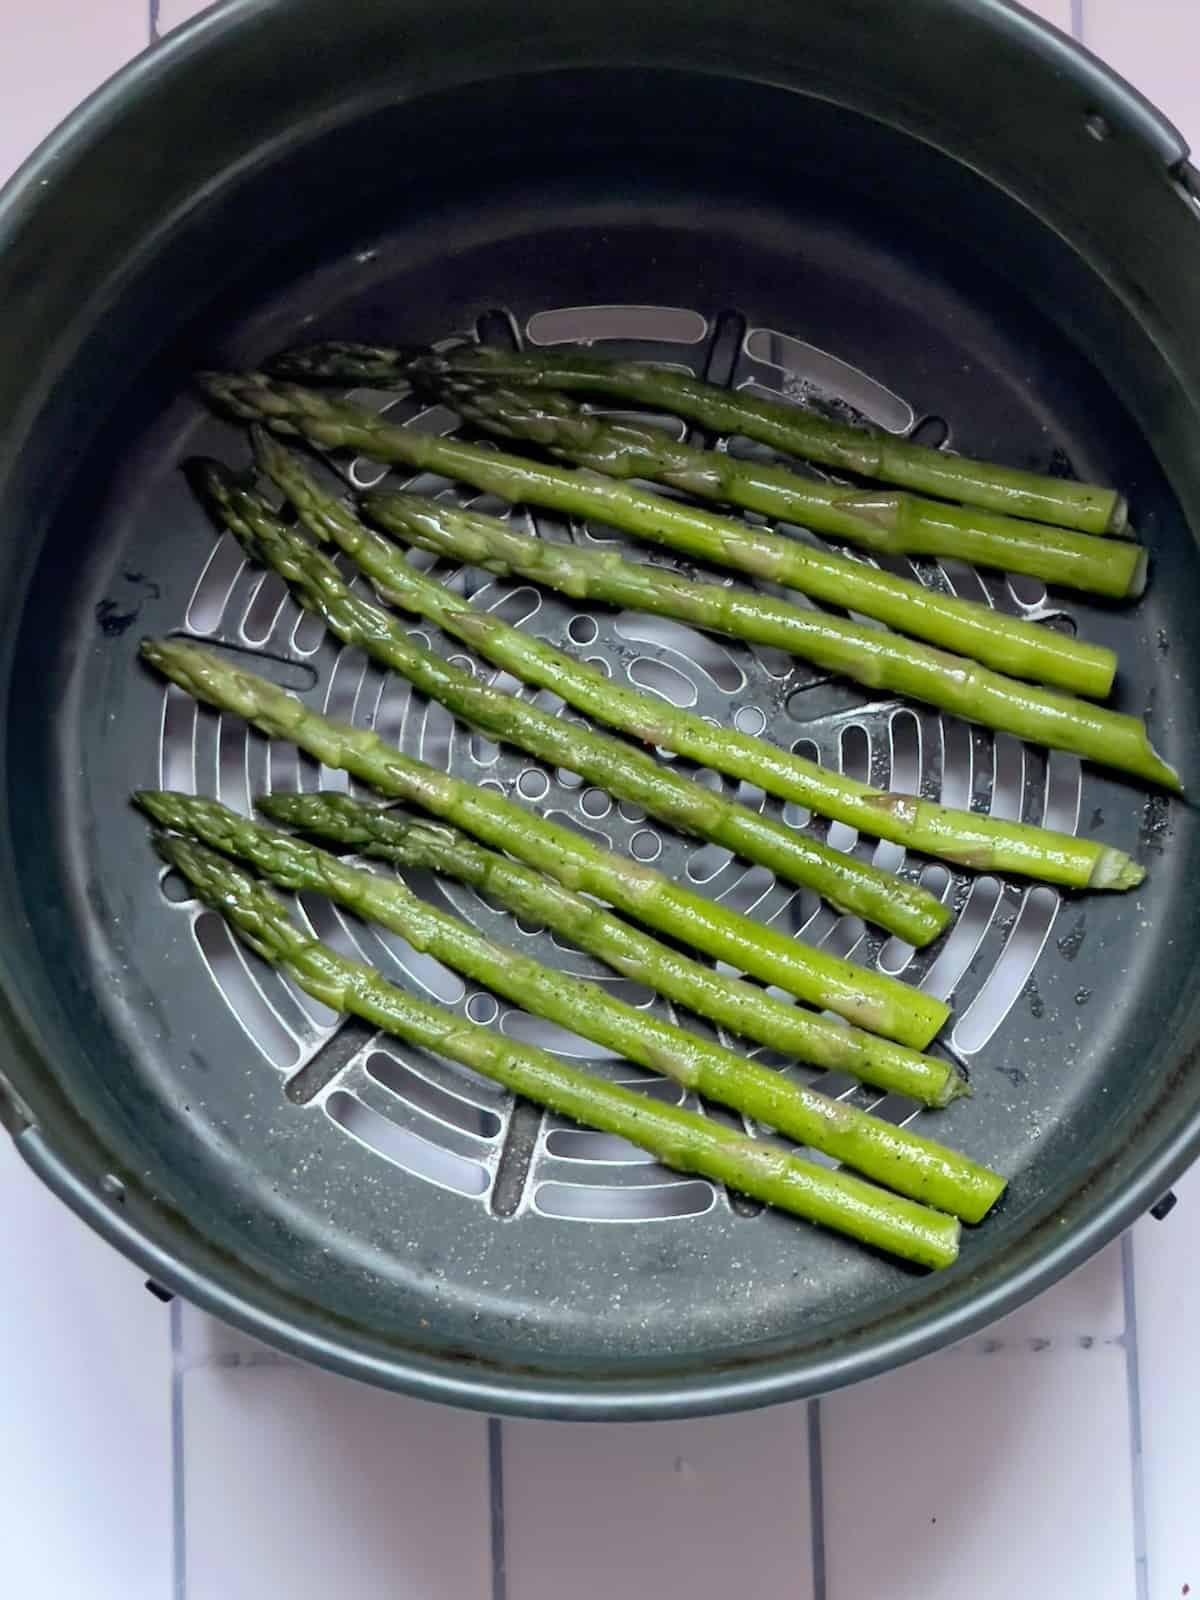 uncooked asparagus stalks in an air fryer basket